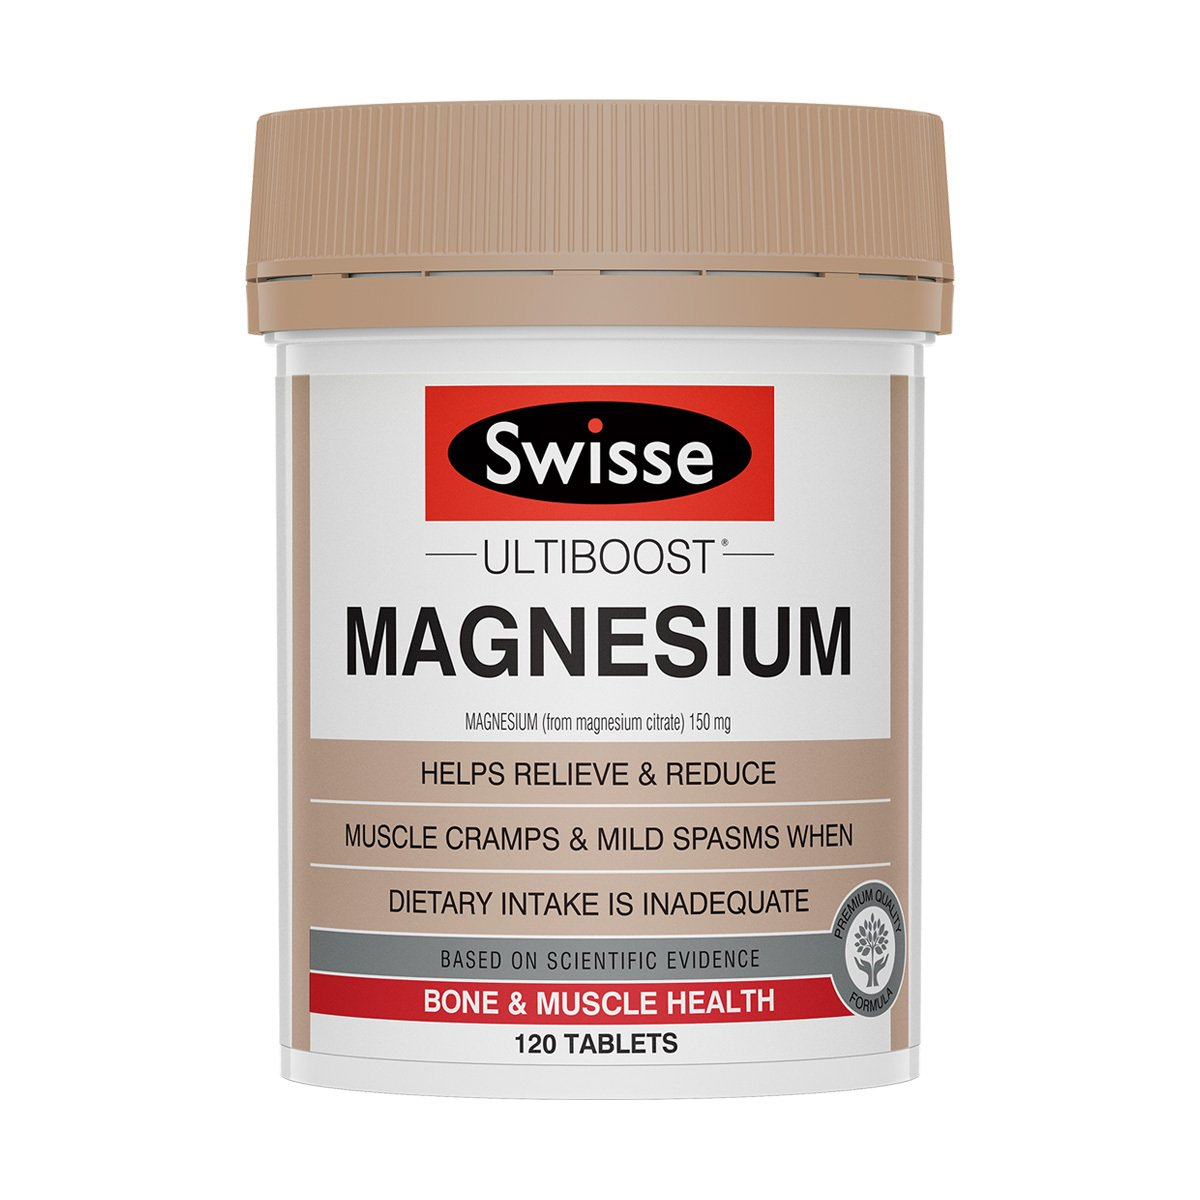 Pack shot of Swisse Product Ultiboost Magnesium 120 tabs